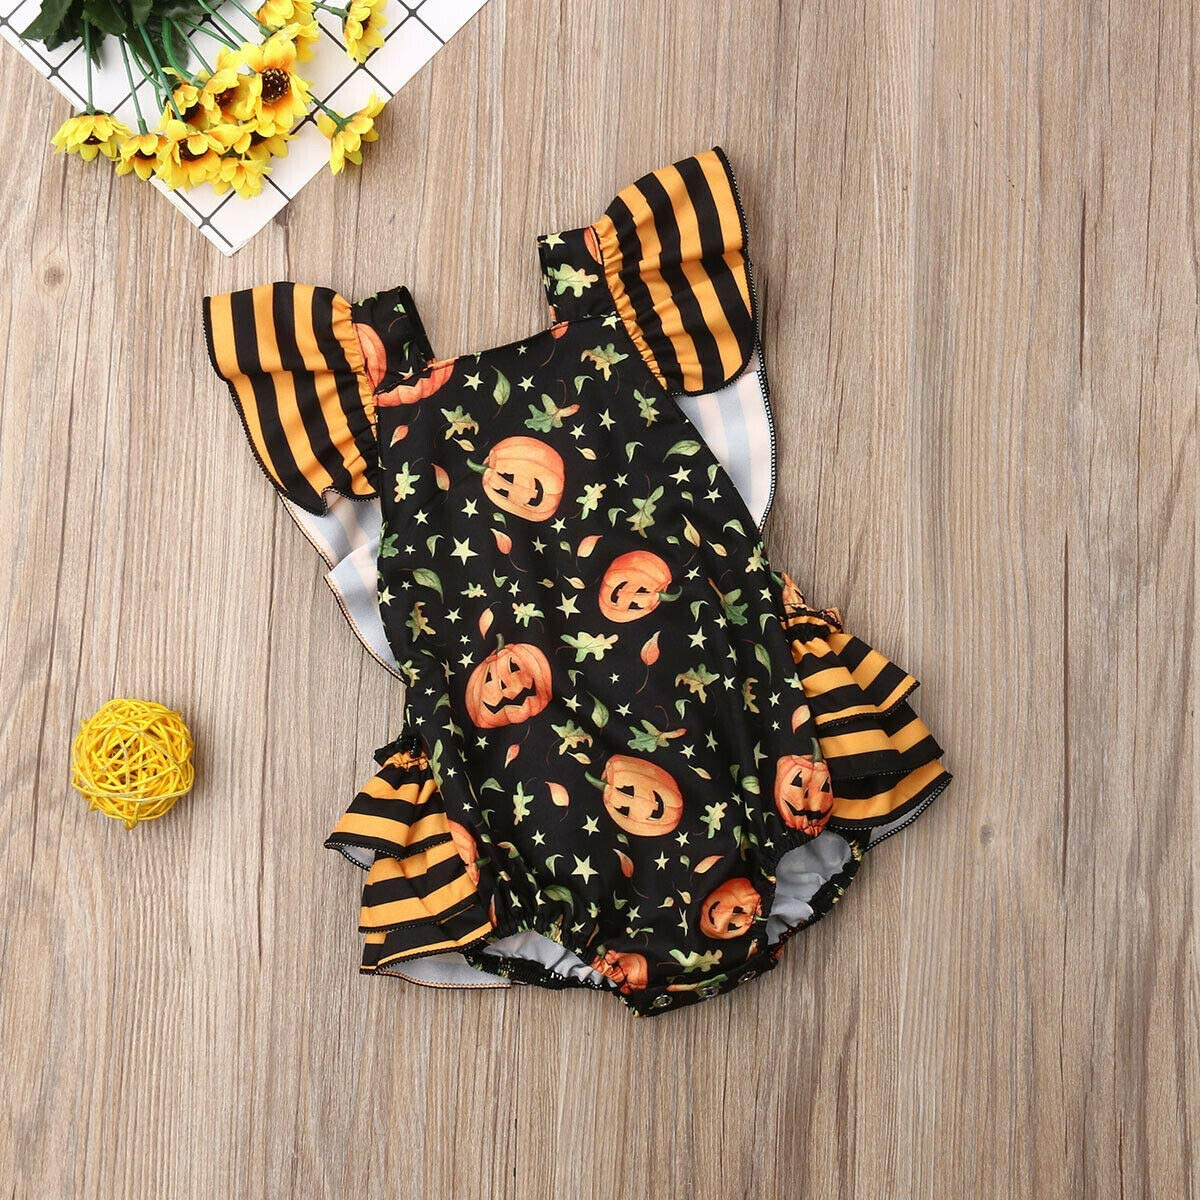 Granny/&Gramps Love Baby Girls Halloween Costume Infants Pumpkin Ruffle Romper Tutu Jumpsuit Outfits